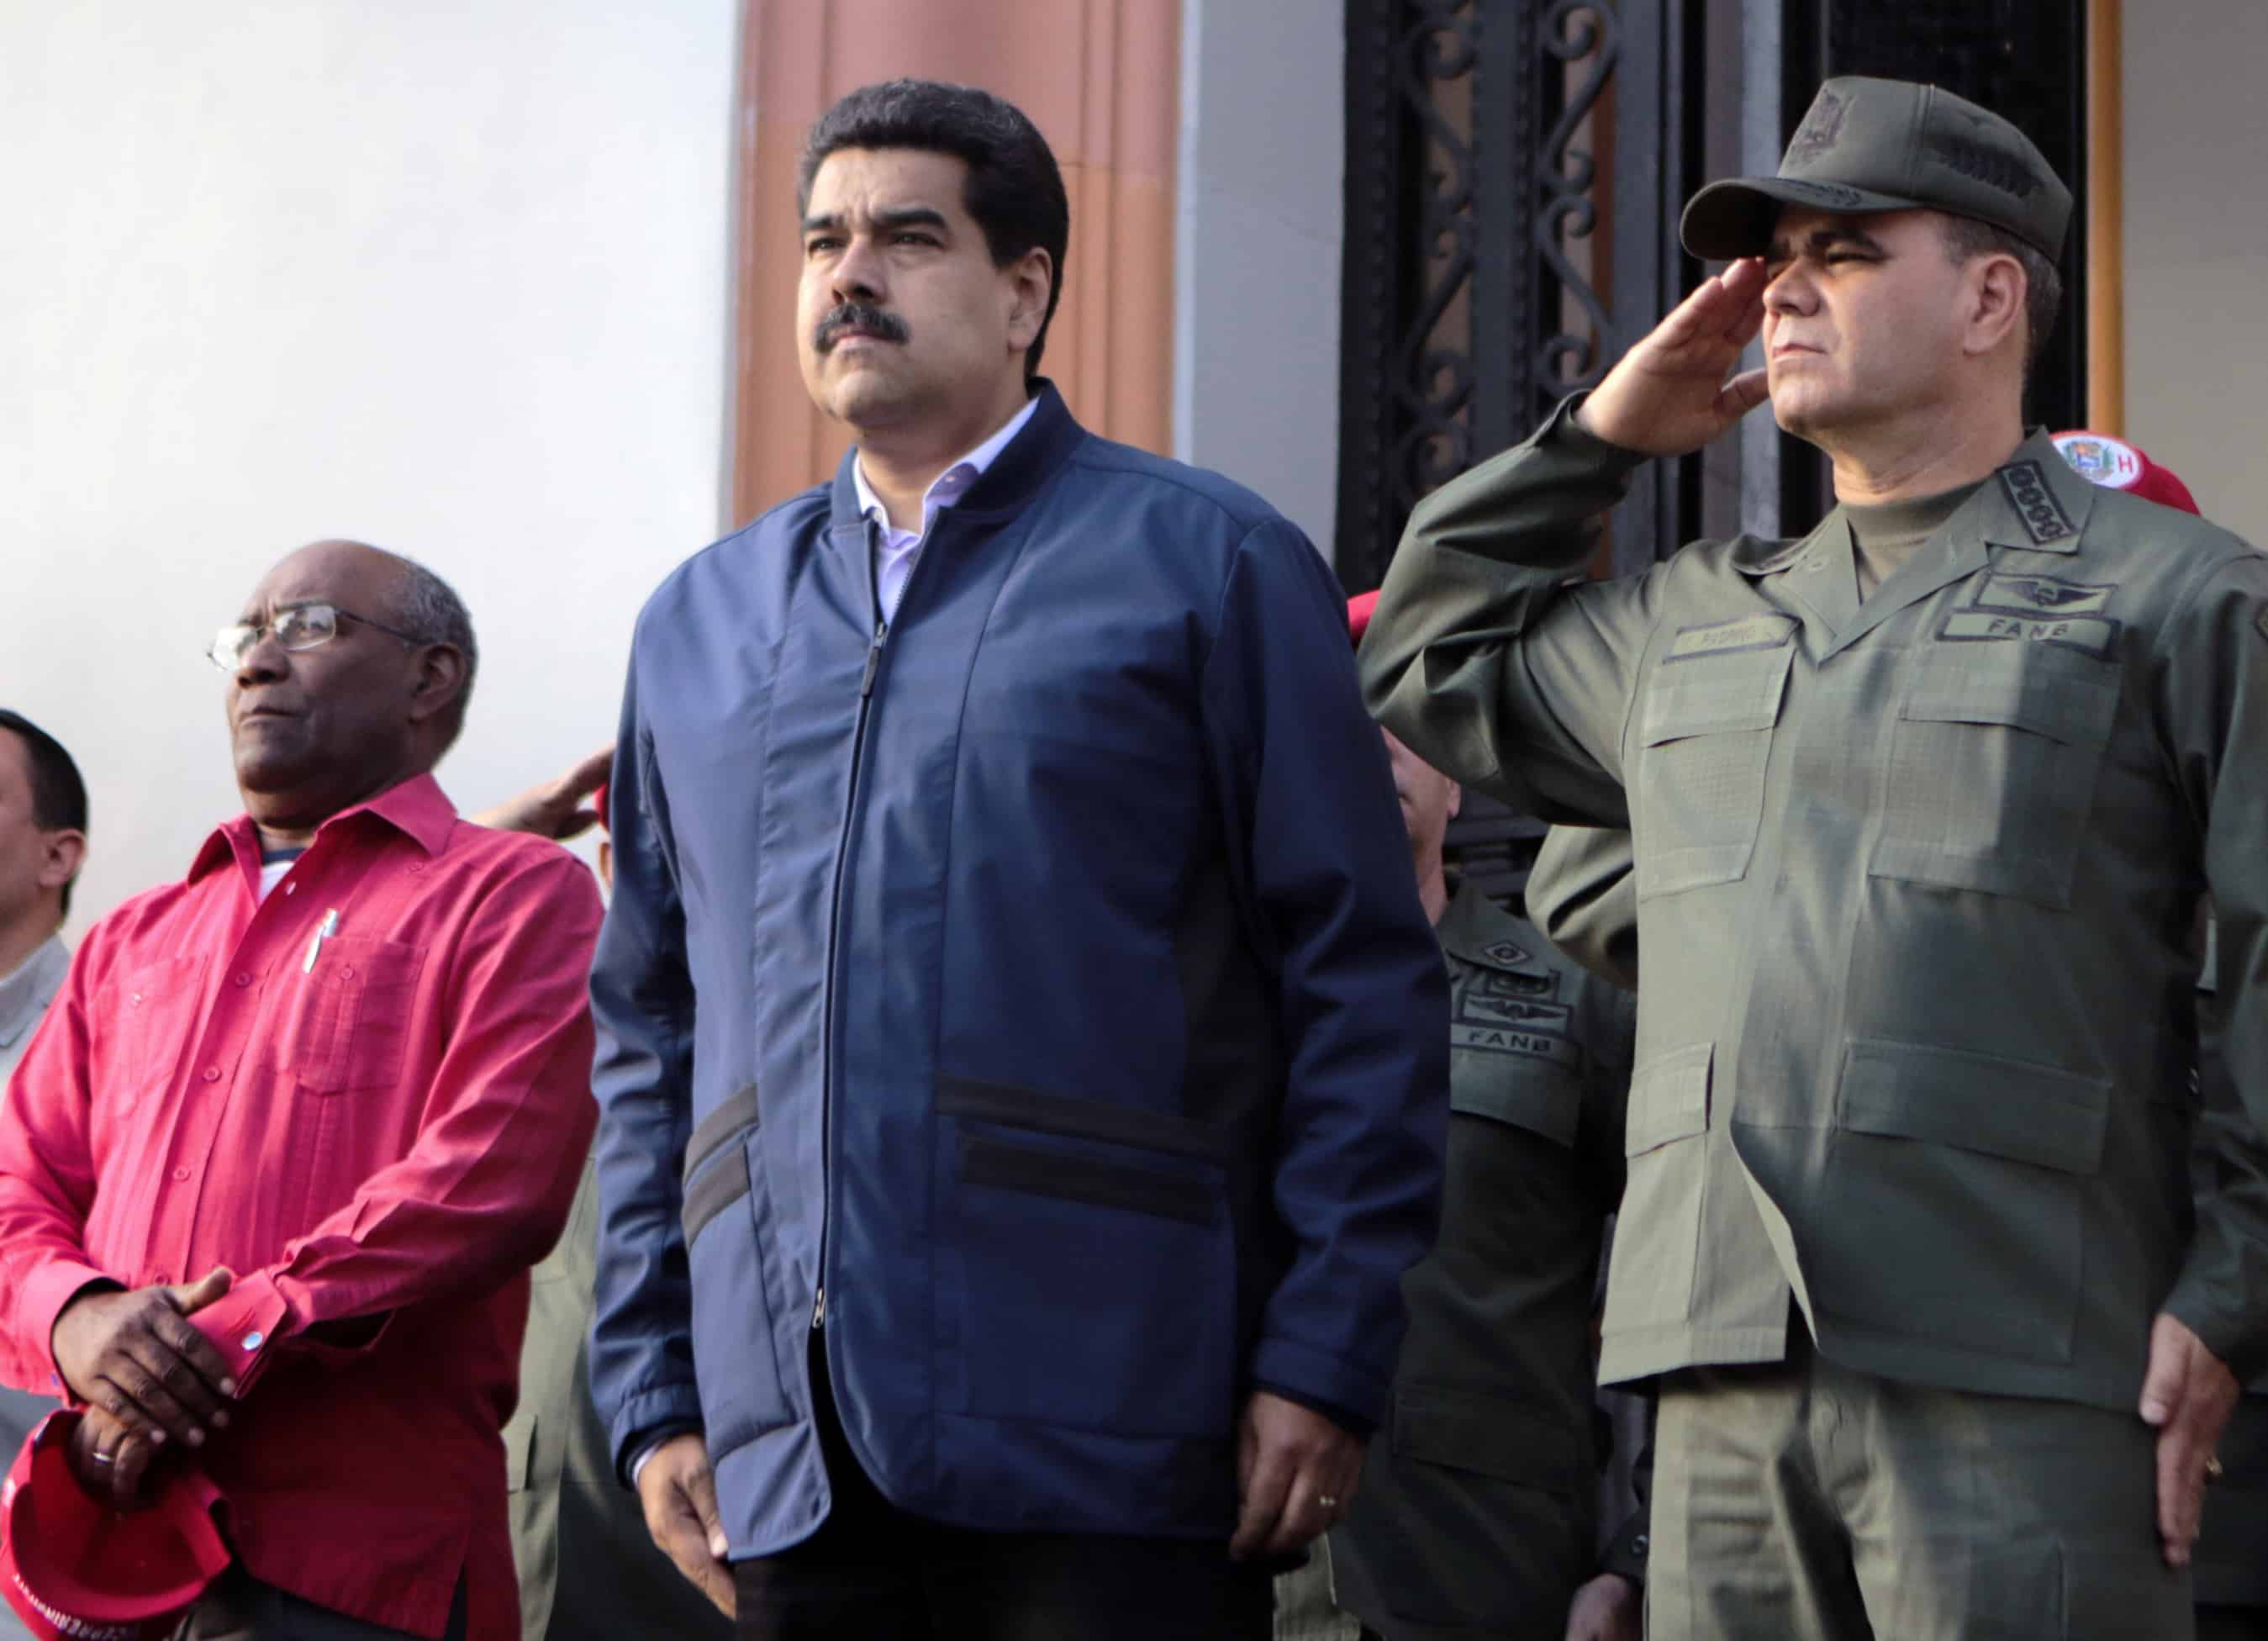 President Nicolás Maduro, center, with Vice President Aristóbulo Istúriz, left, and Defense Minister Vladimir Padrino López